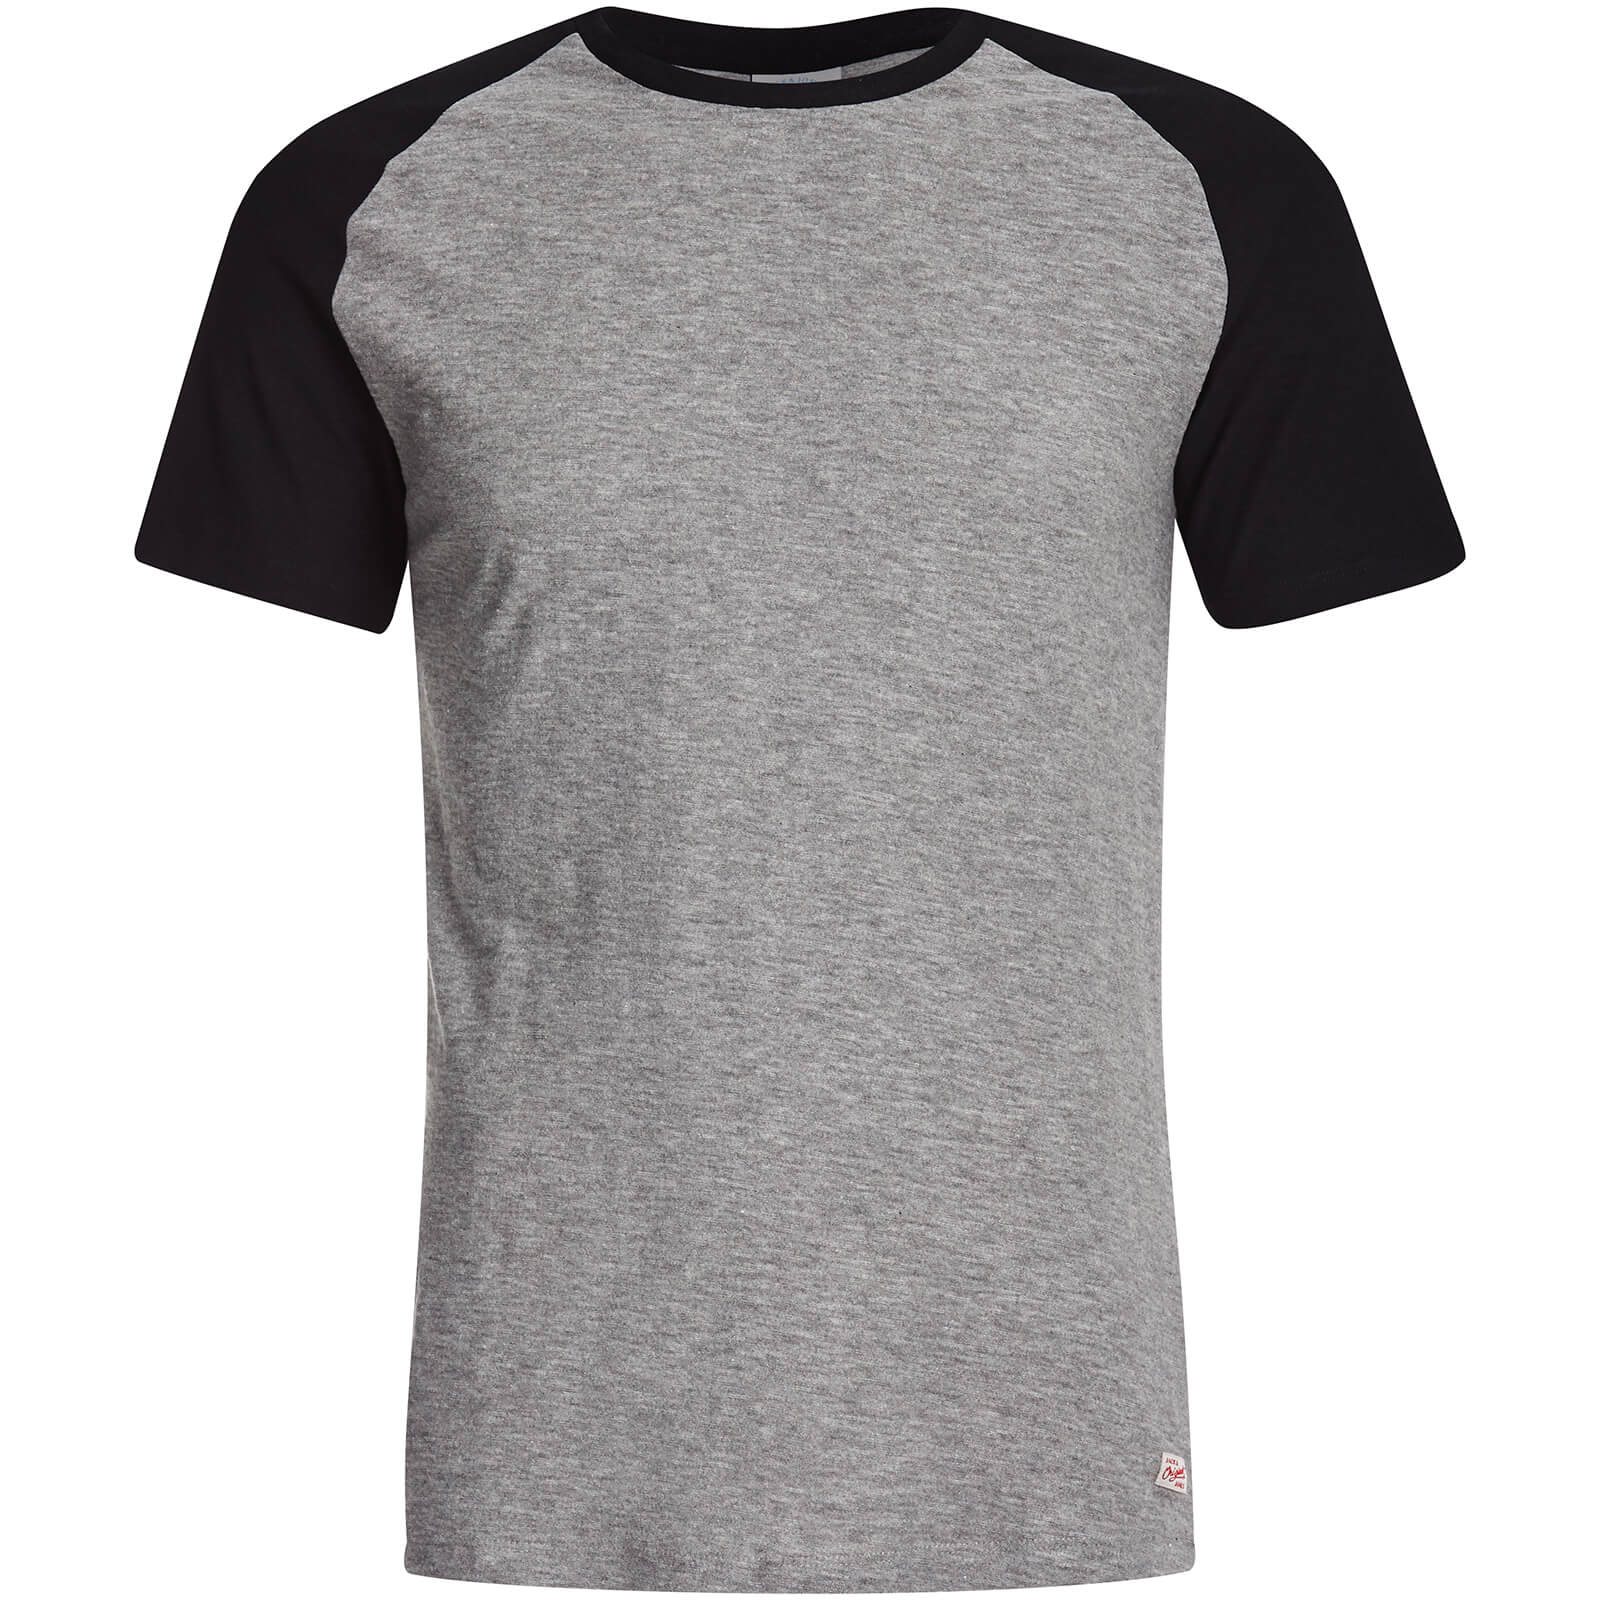 T-Shirt Homme Originals Stan Raglan Manches Courtes Jack & Jones -Gris/Noir